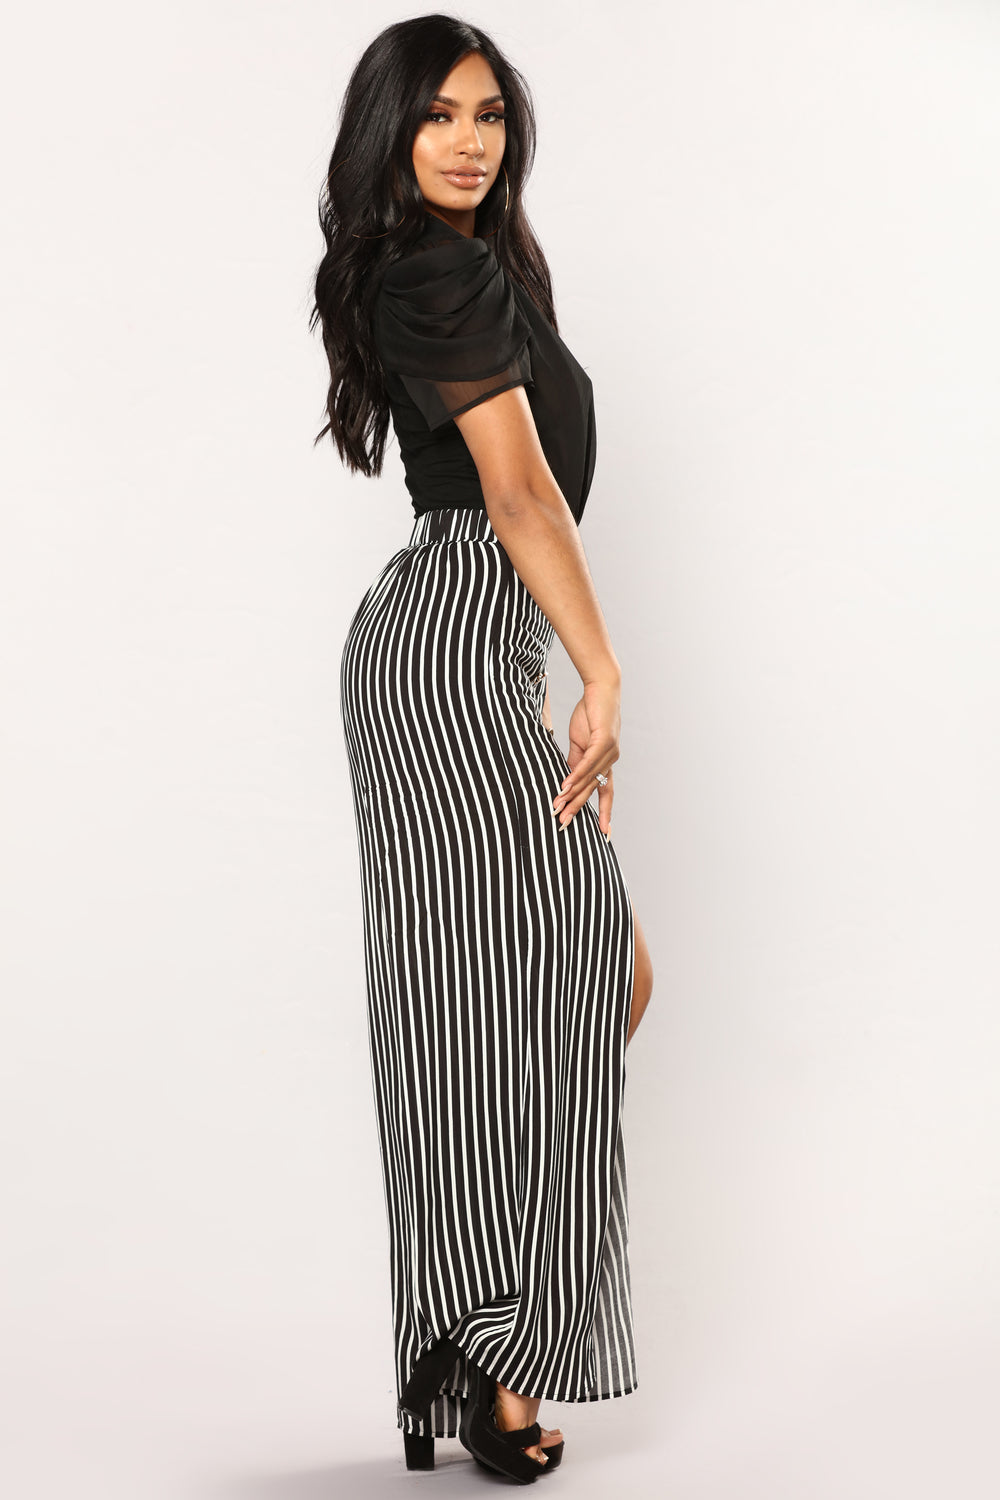 Katara Stripe Pants - Black/white